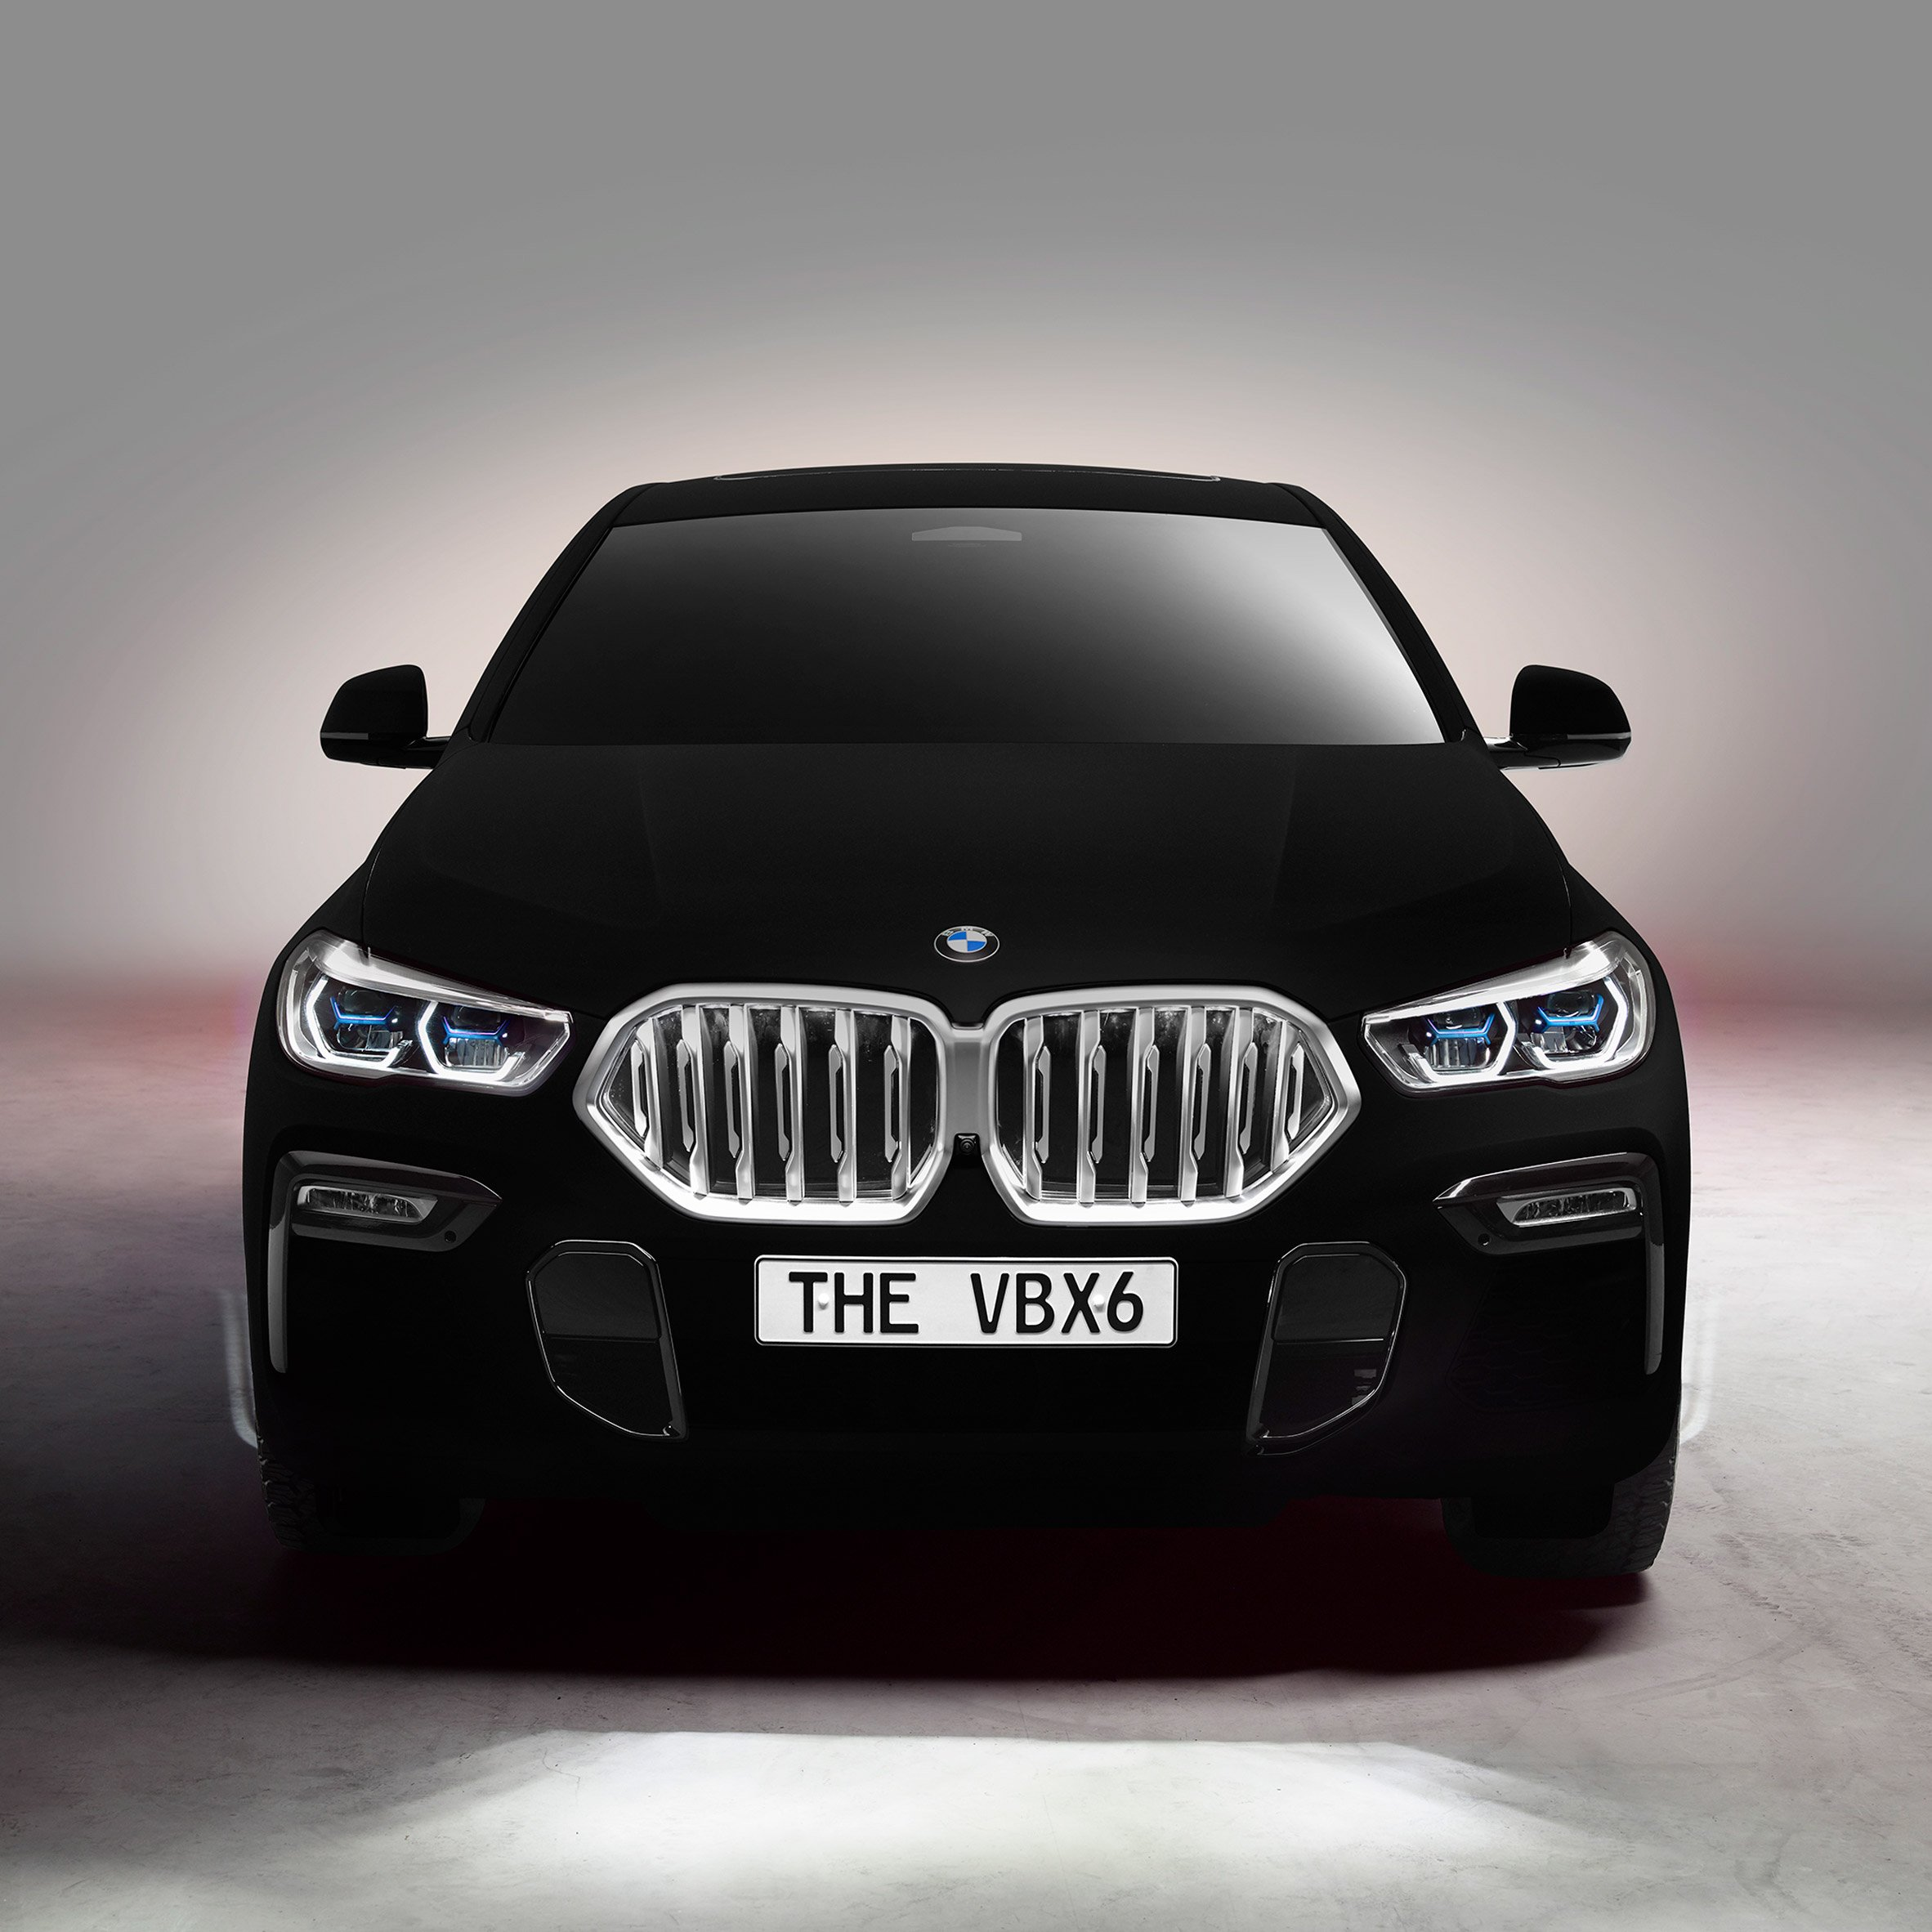 Bmw Unveils Blackest Black Bmw Vbx6 Car Sprayed With Vantablack